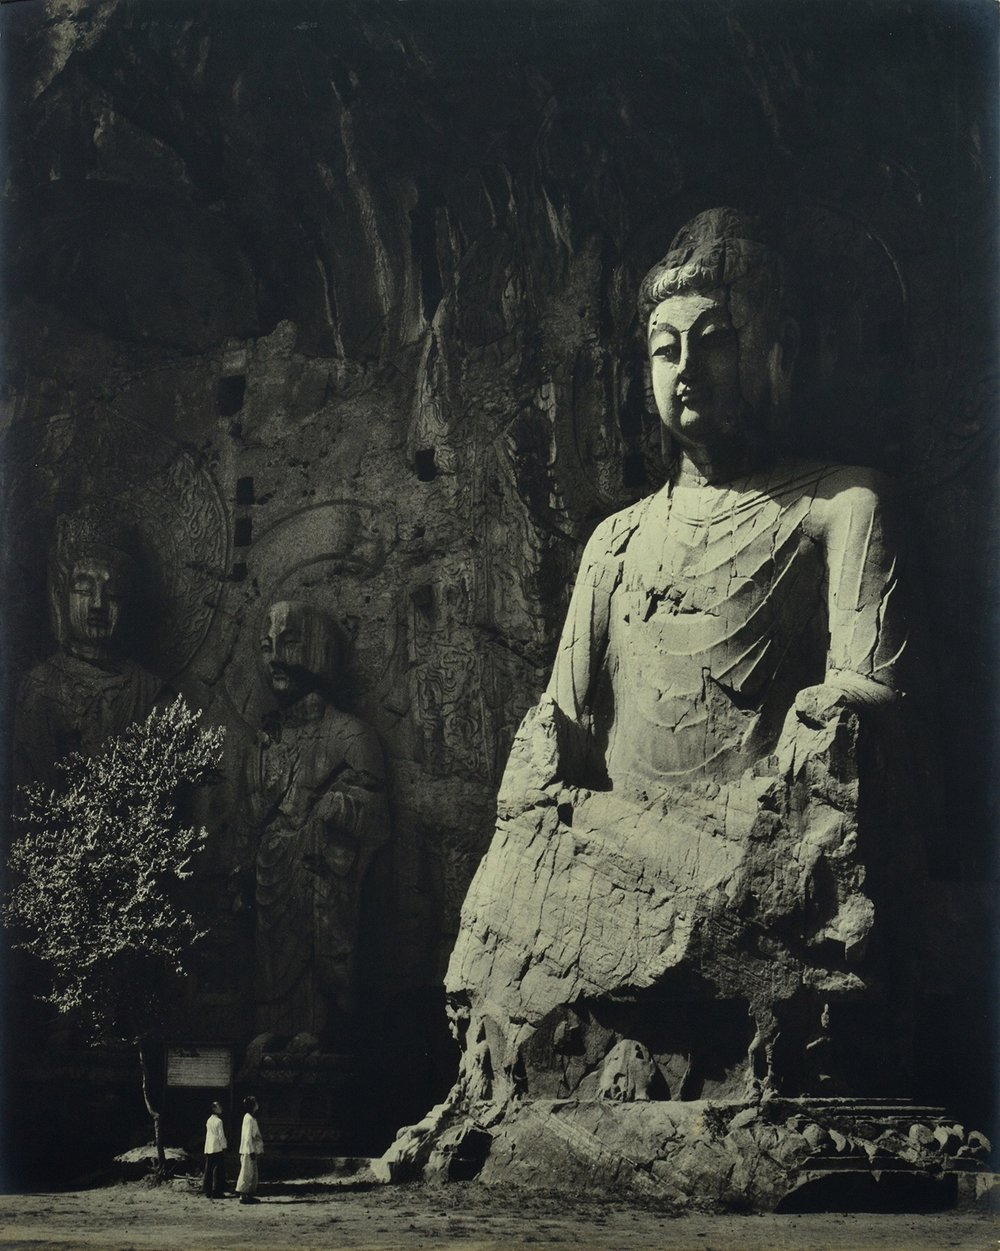 xue-zijiang-china-1950s-photography-of-china-3.jpeg